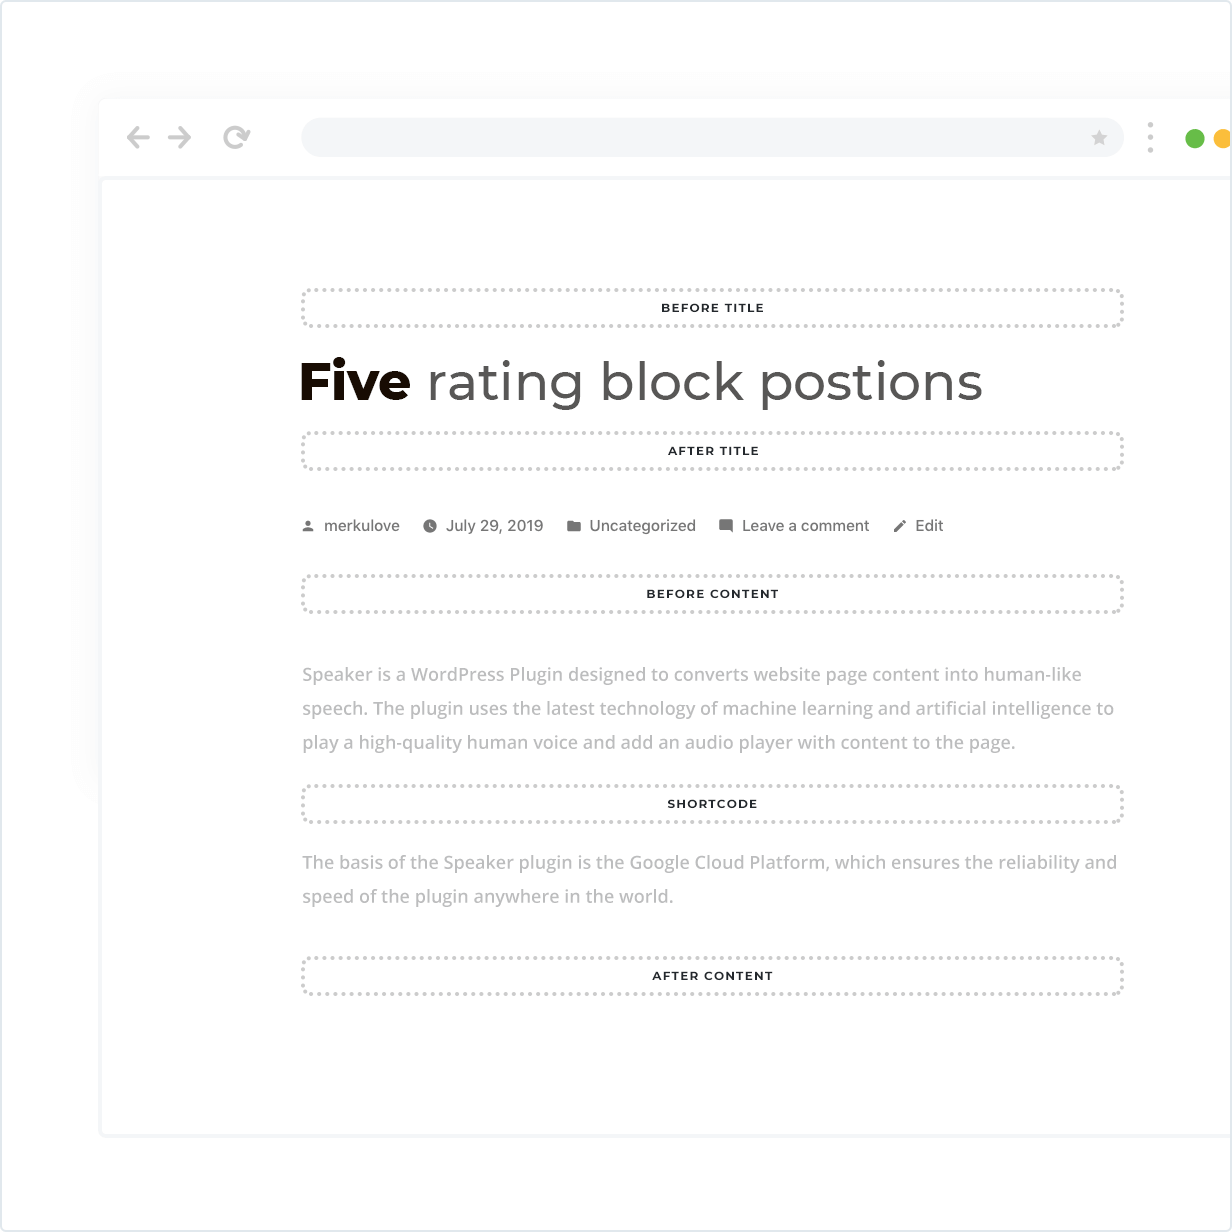 5 rating block positions